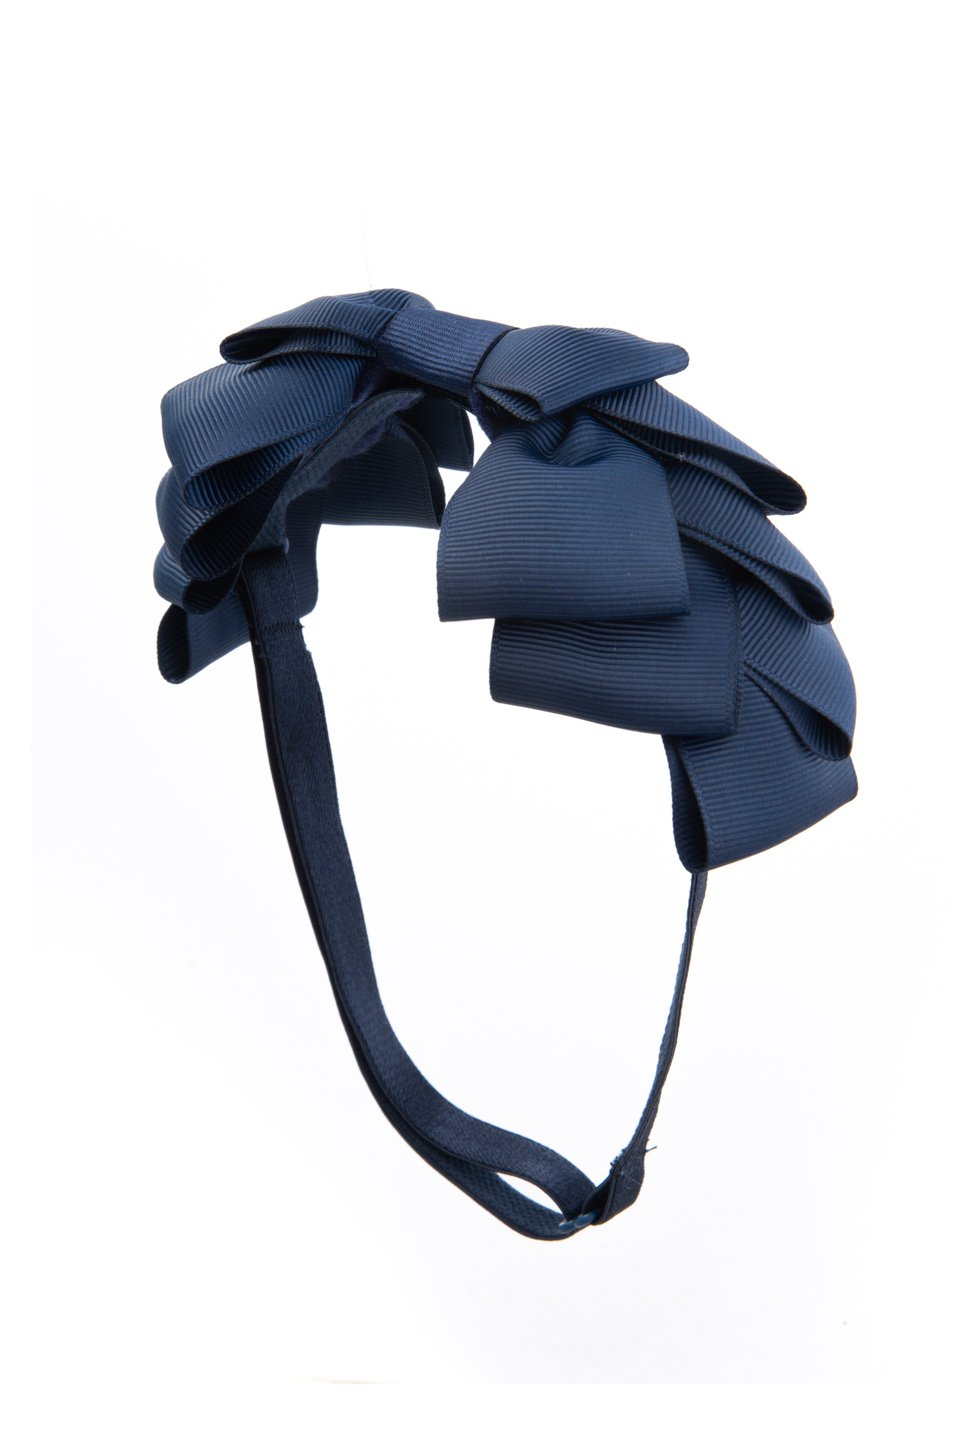 Pleated Ribbon Grosgrain Wrap - Navy - PROJECT 6, modest fashion